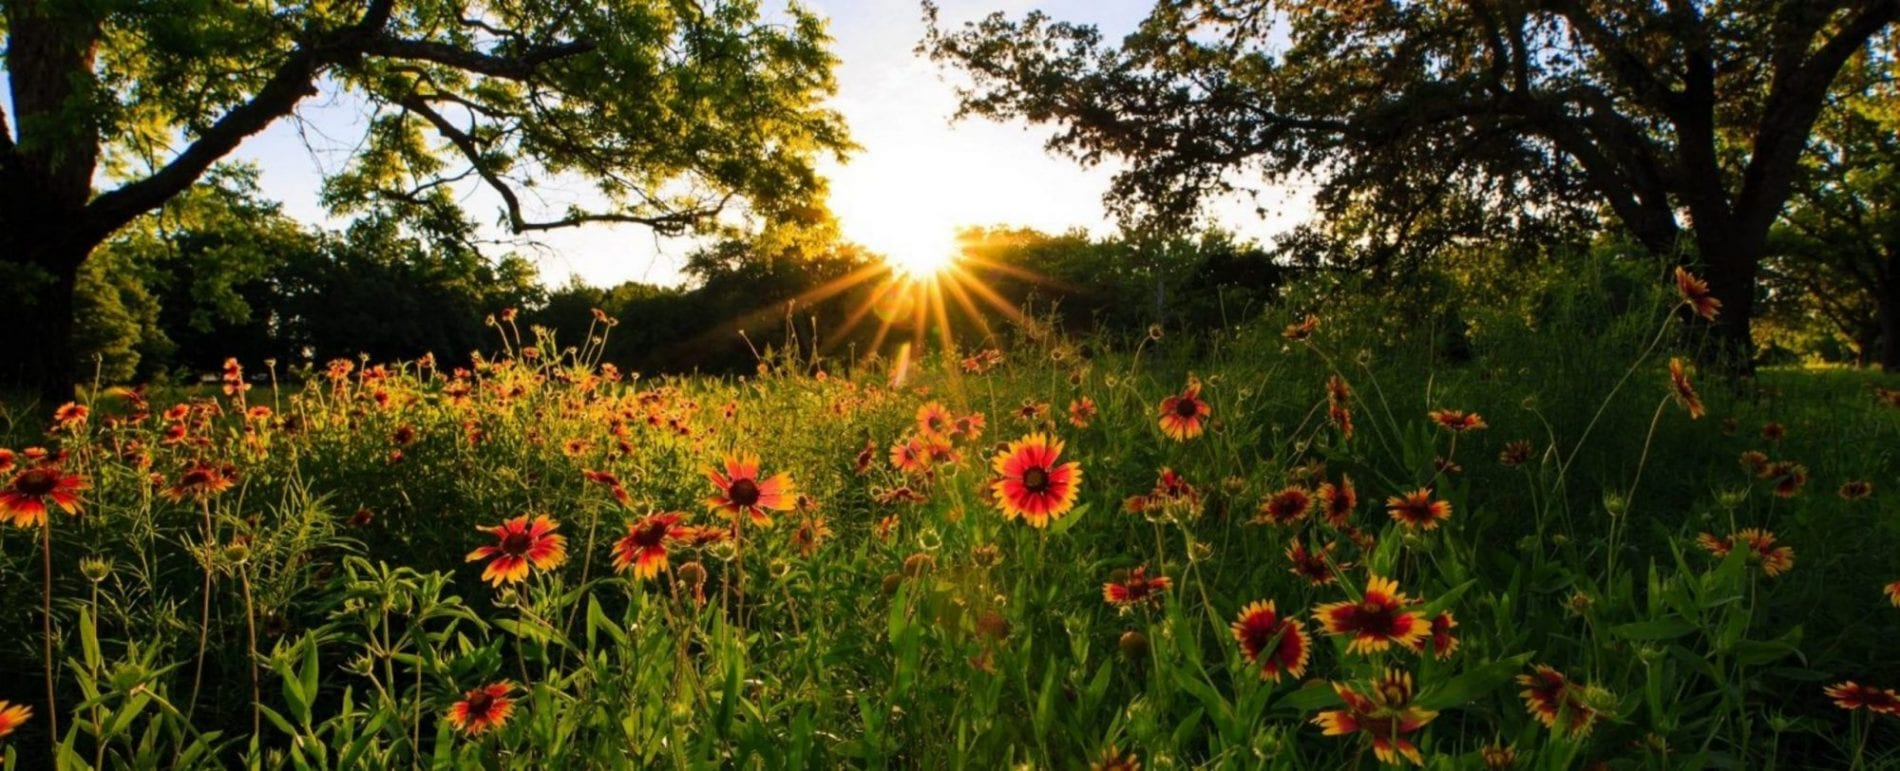 Best Time To See Wildflowers In Texas Hill Country 1500x609@2x Scaled